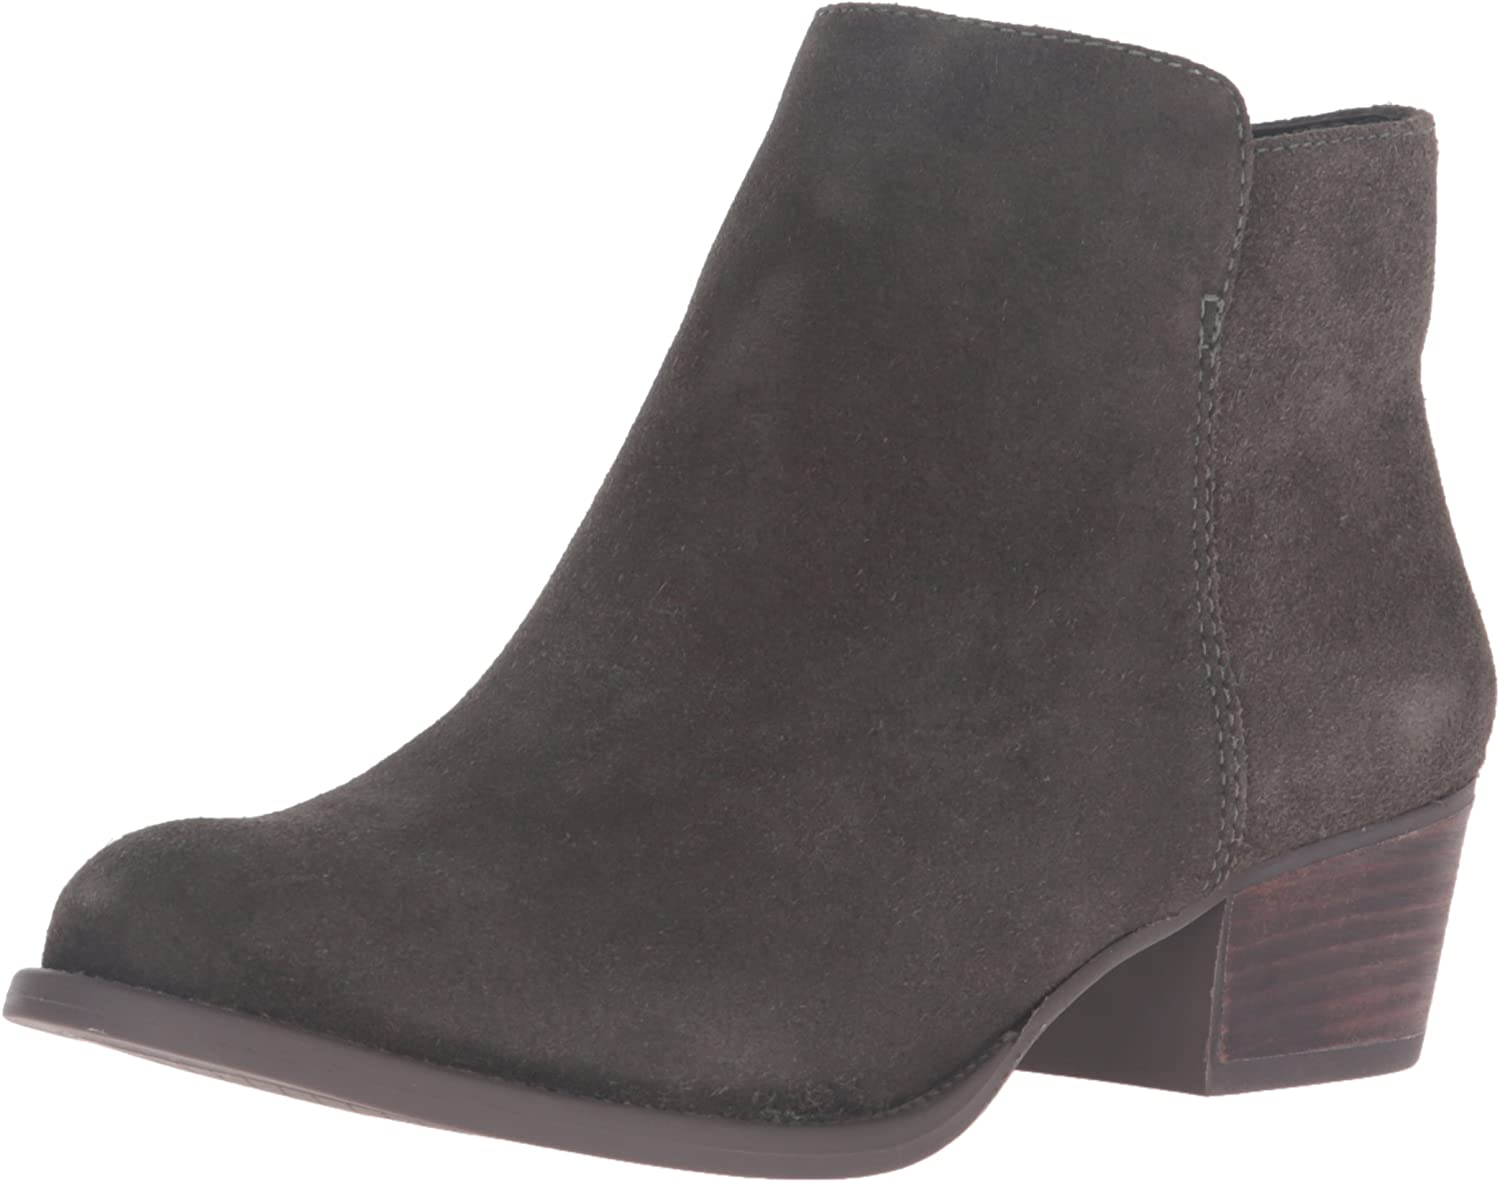 Jessica Simpson Womens Delaine Ankle Boot